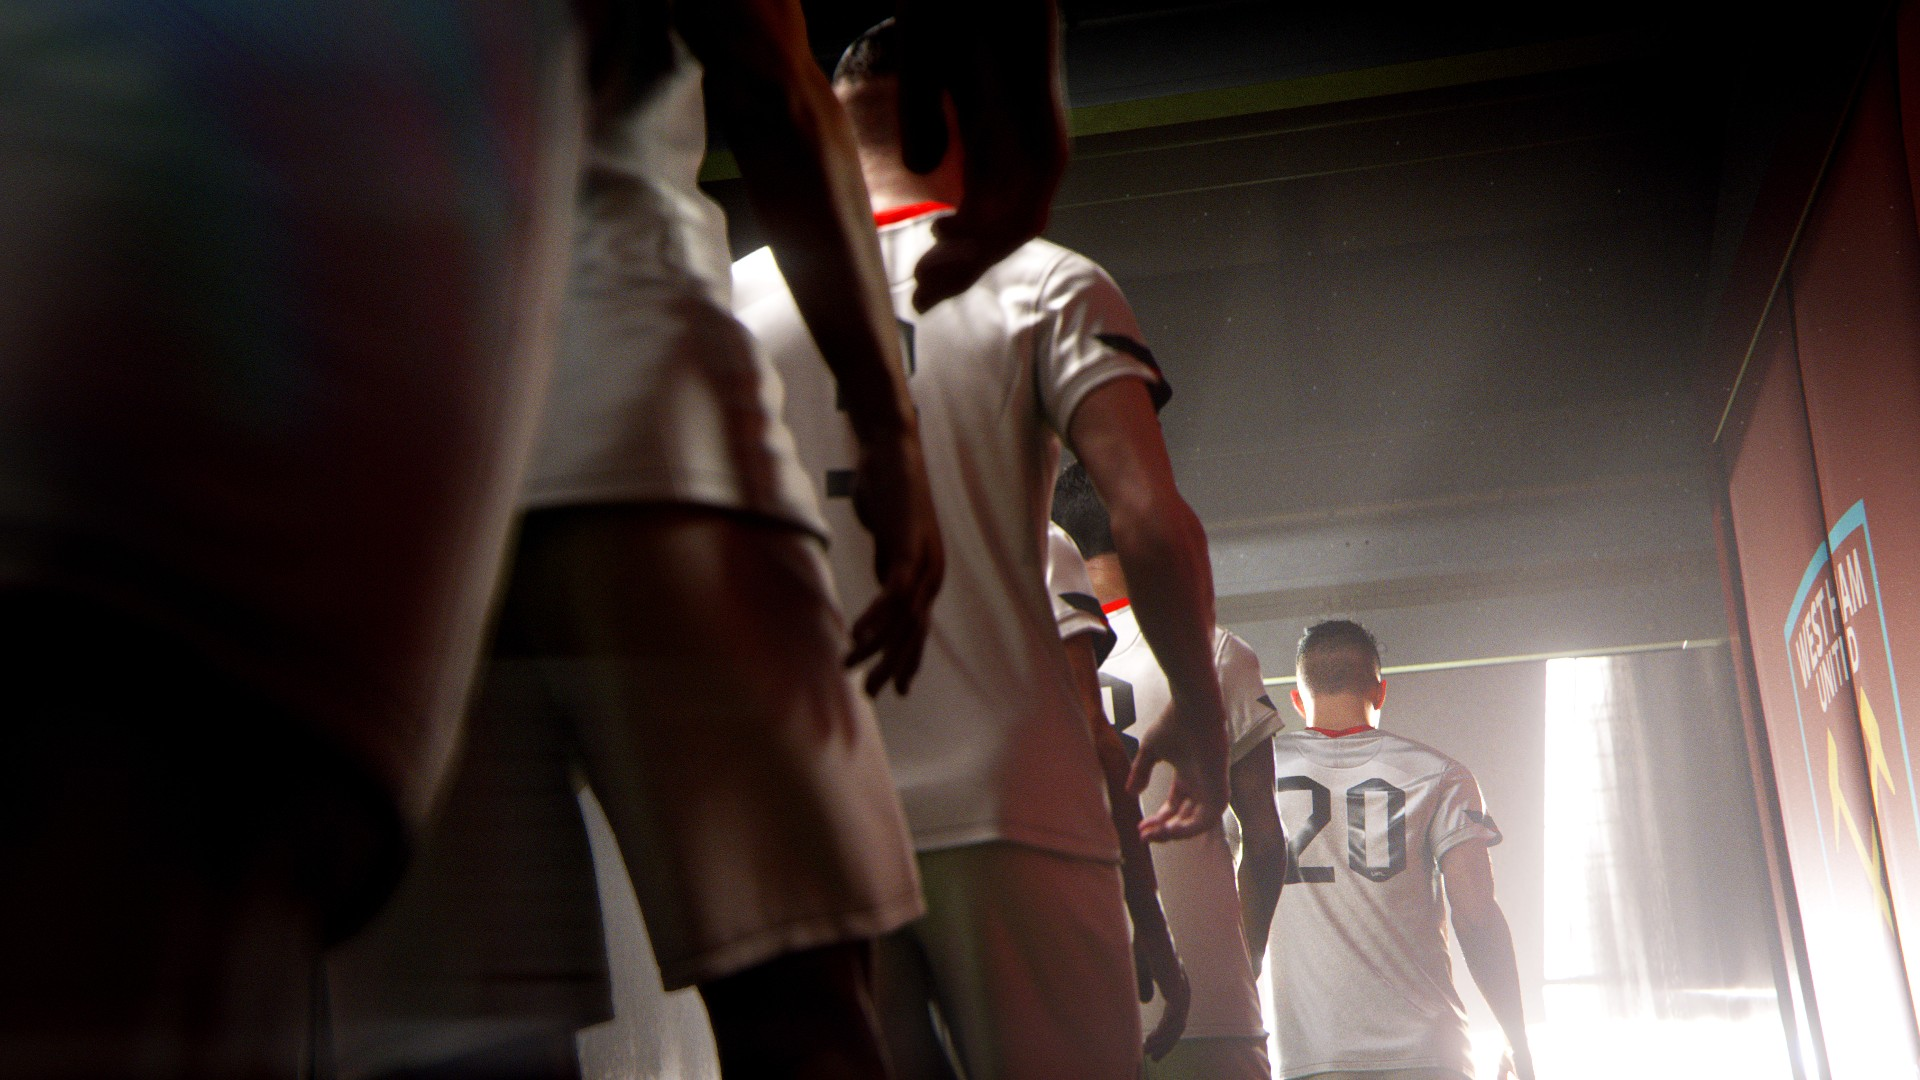 UFL Competes FIFA, PES Unreal Engine Trailer Reveal